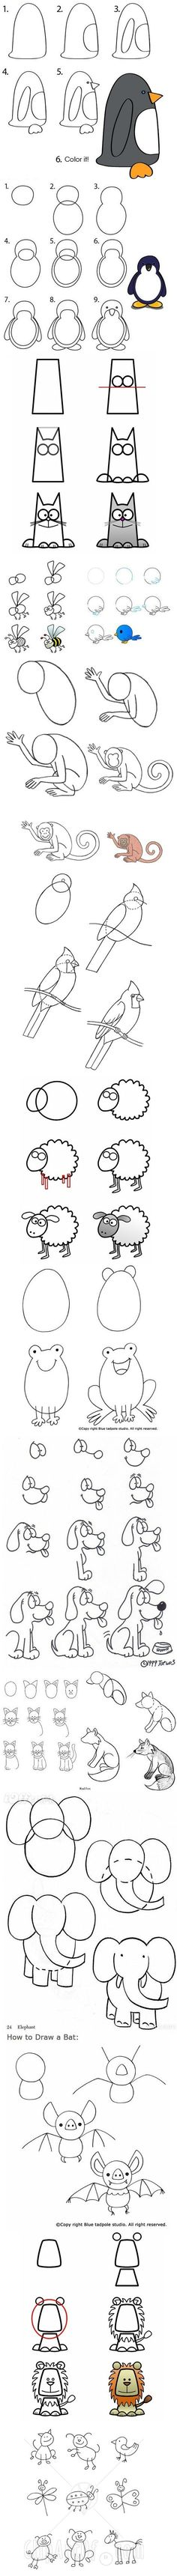 Super cute tips for kids on how to draw animals. WB x